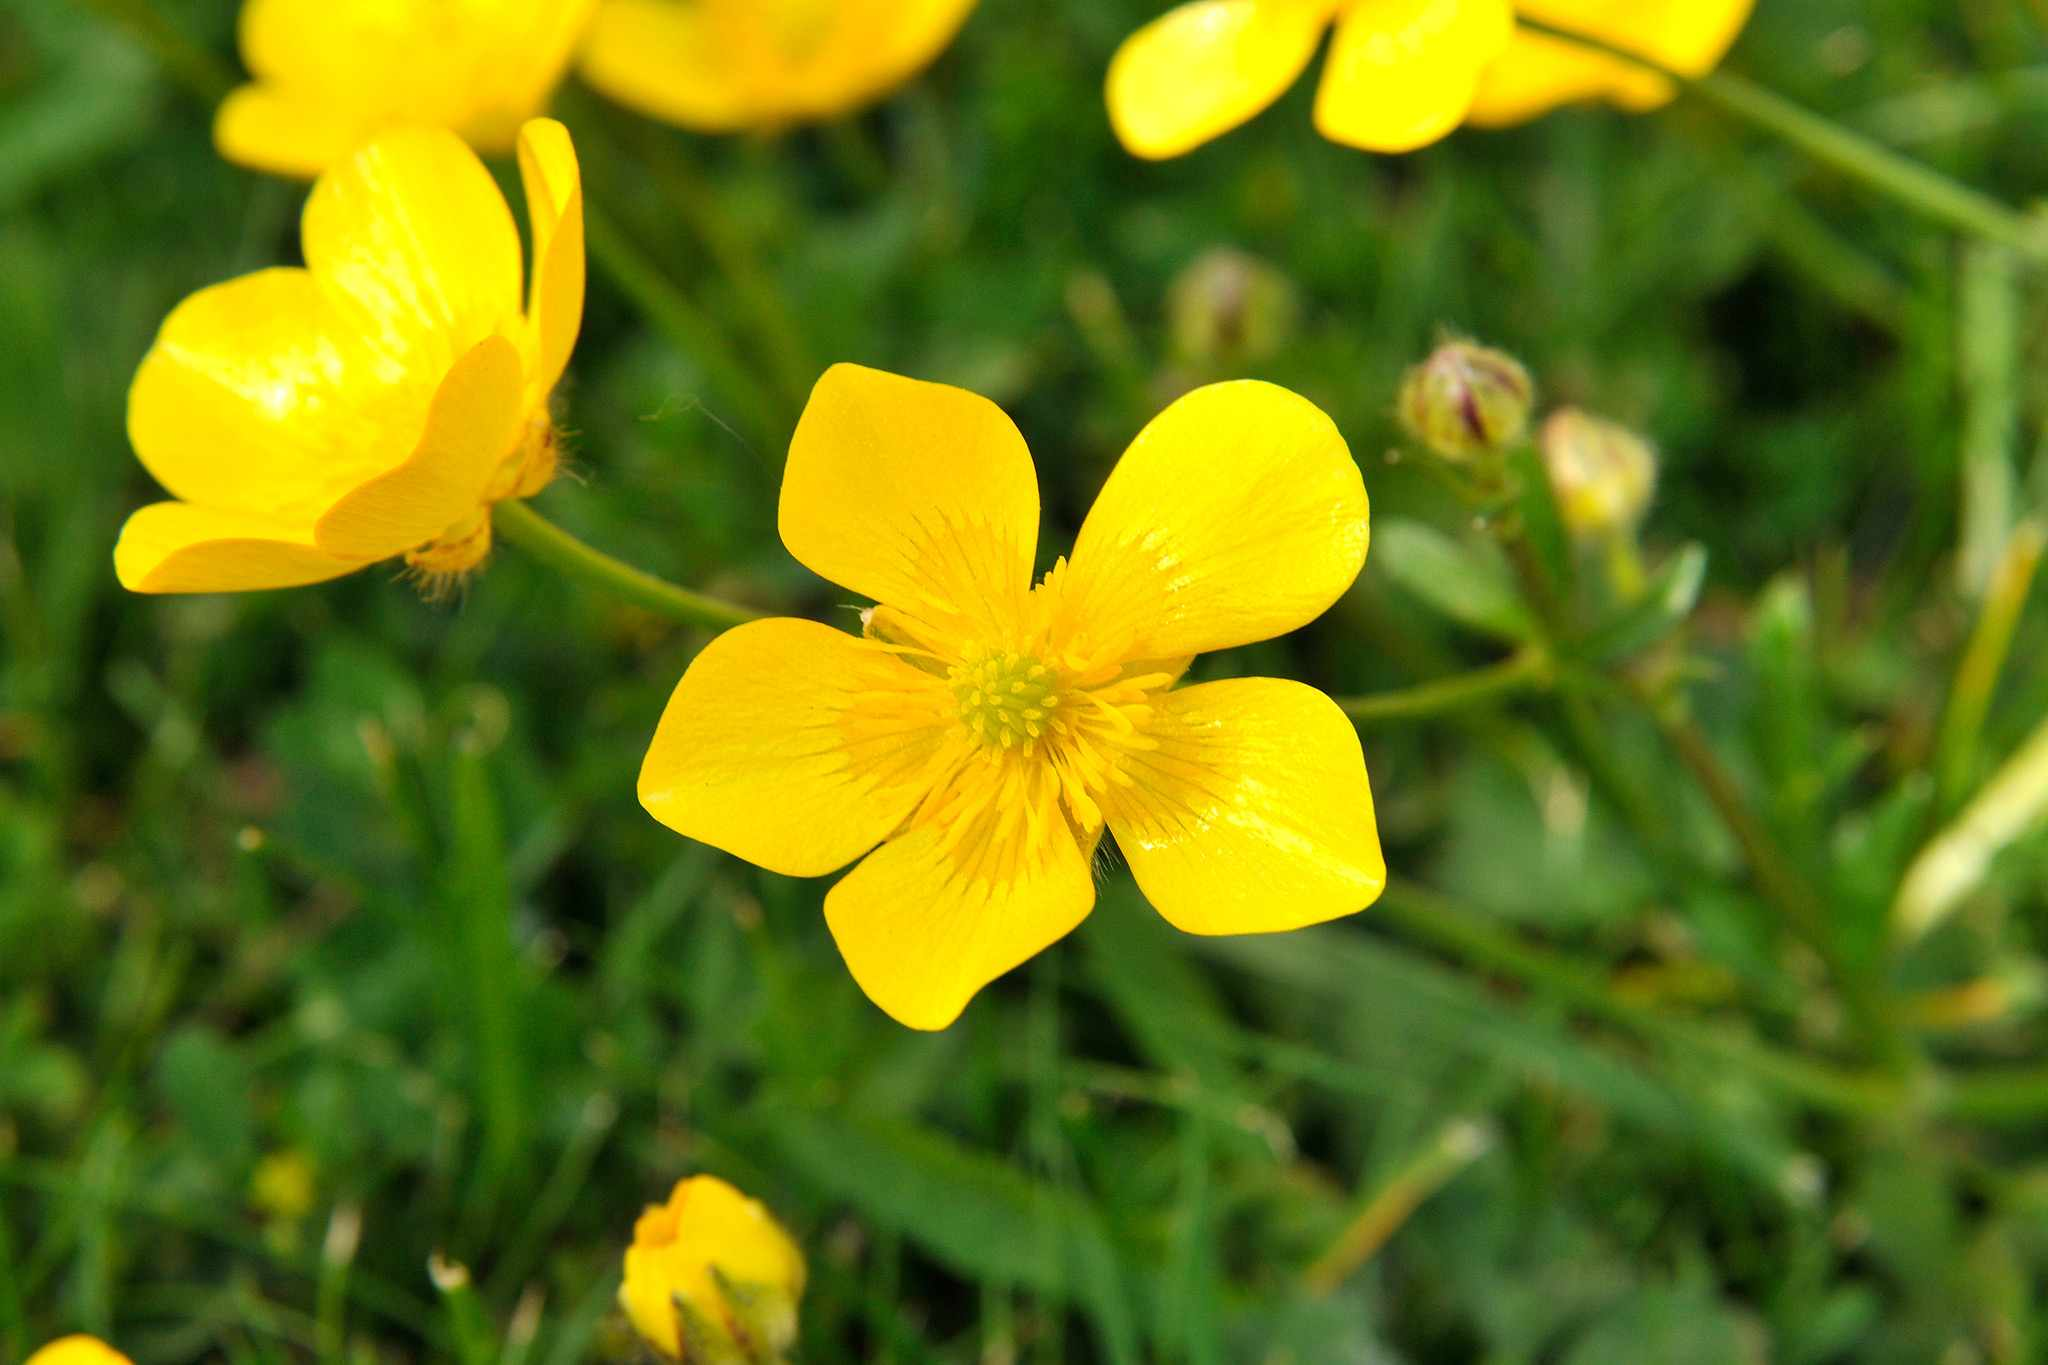 Glossy yellow flowers of creeping buttercup